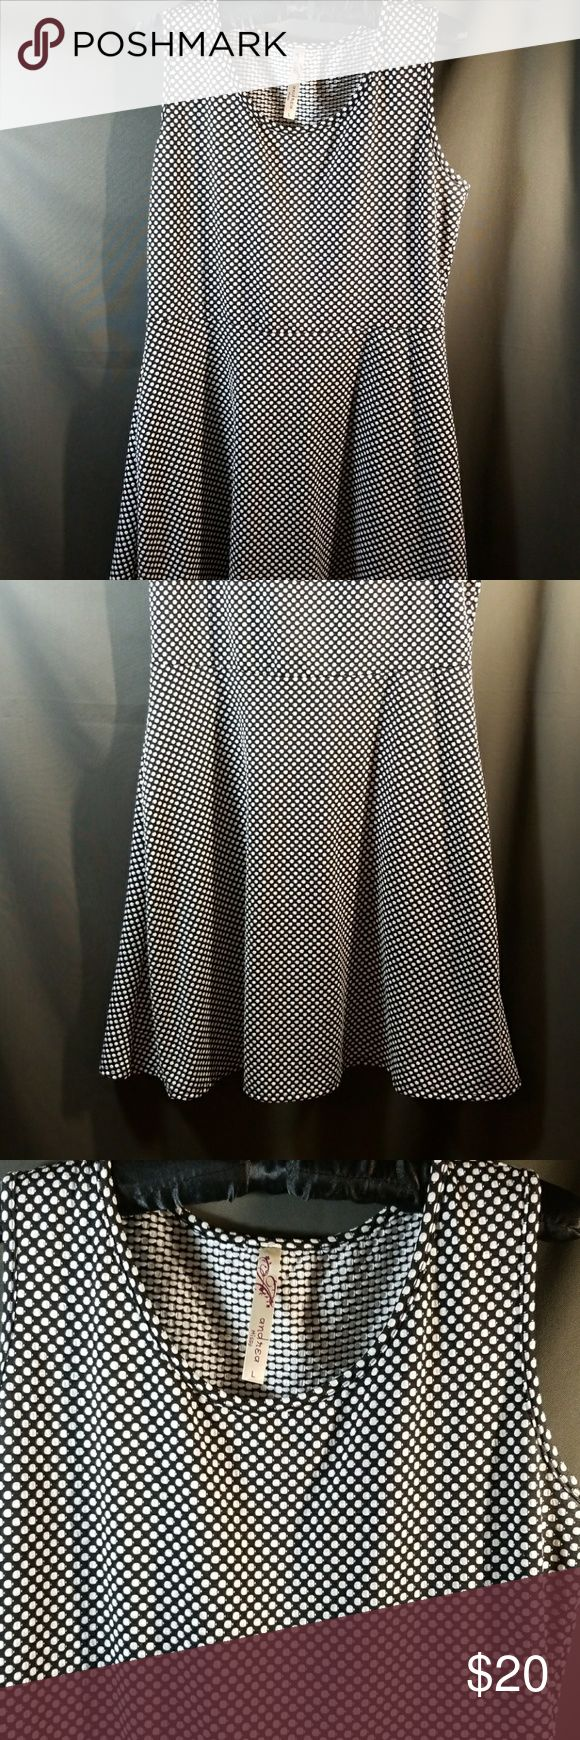 Andrea Missy Dress Black and White Polka Dot Dress Andrea Missy Dresses